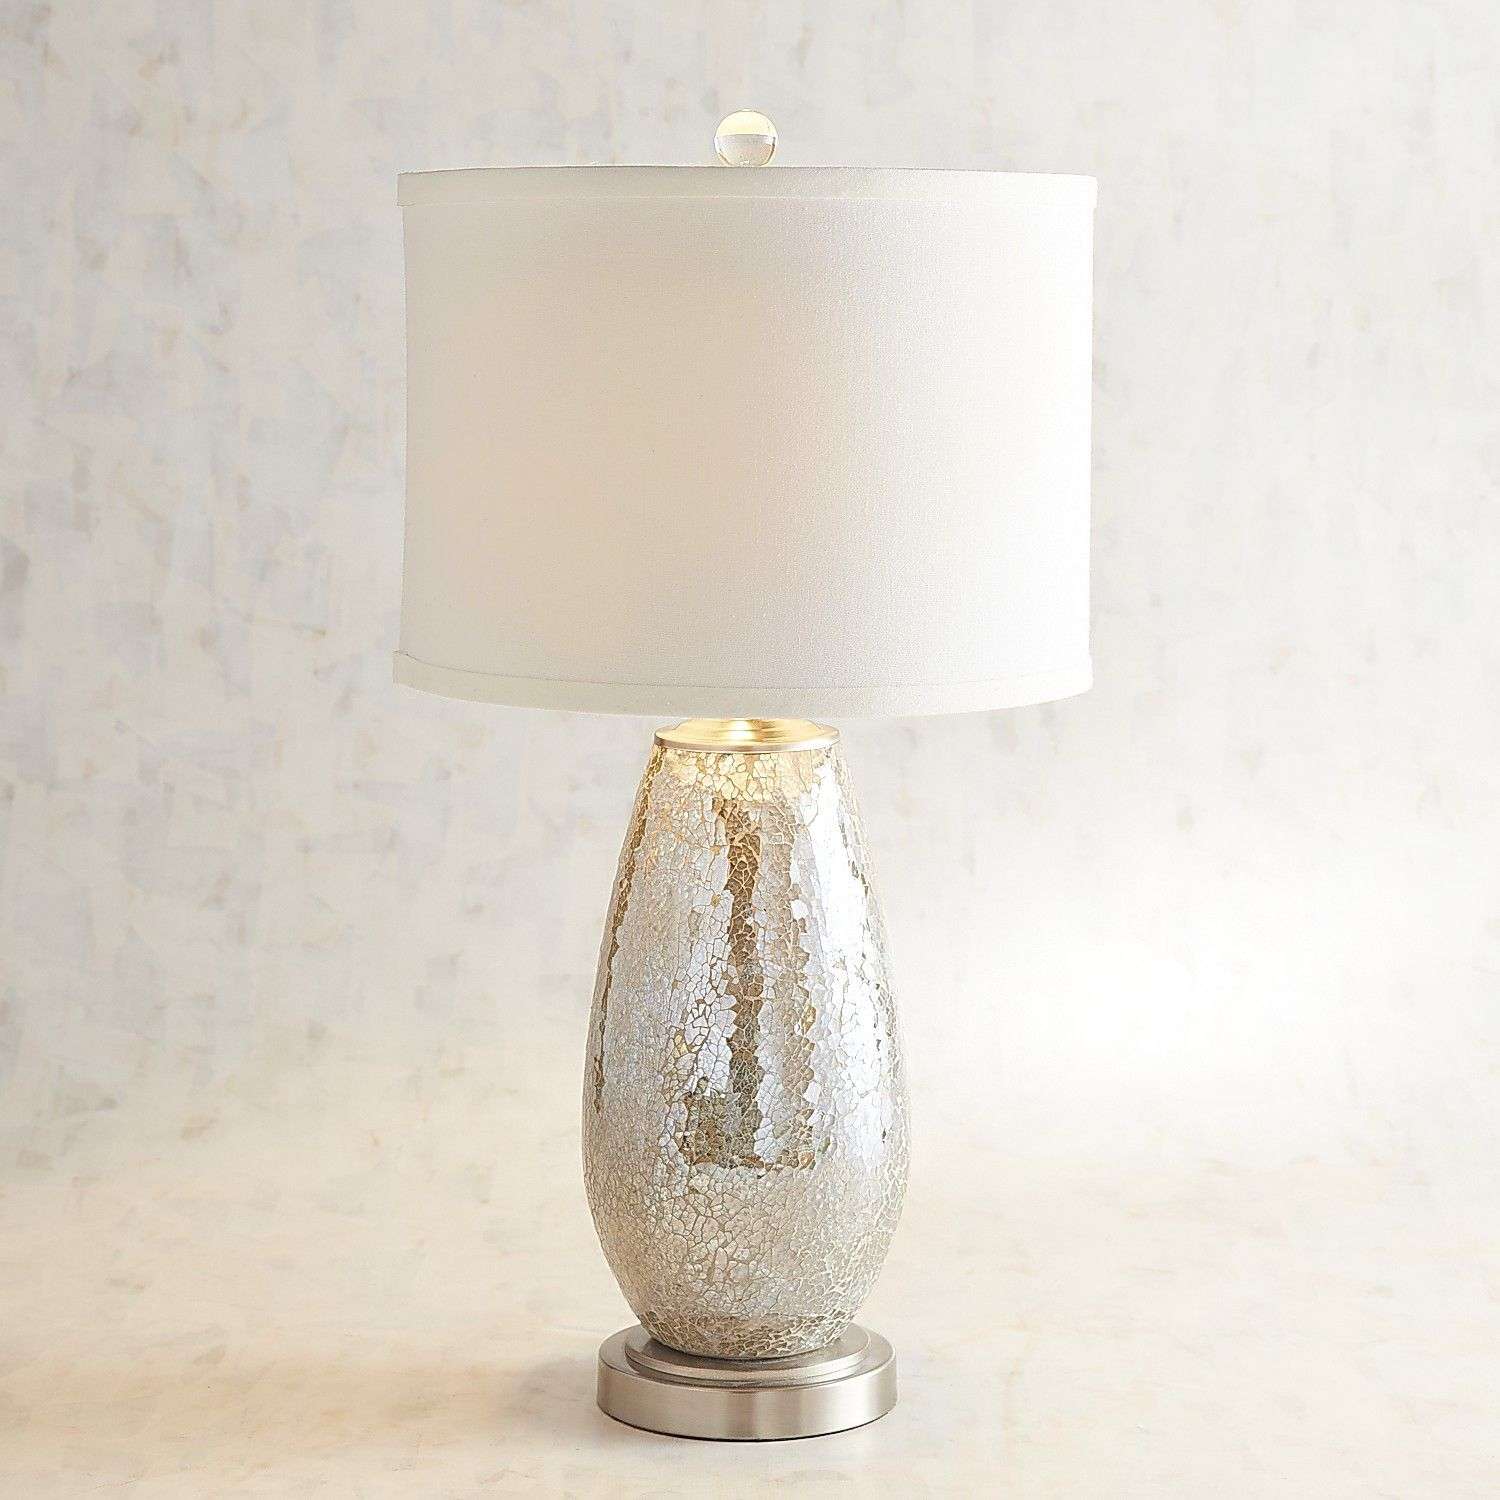 mink com lamp turkish badotcom furniture table mosaic gallery with lamps uk throughout bedroom